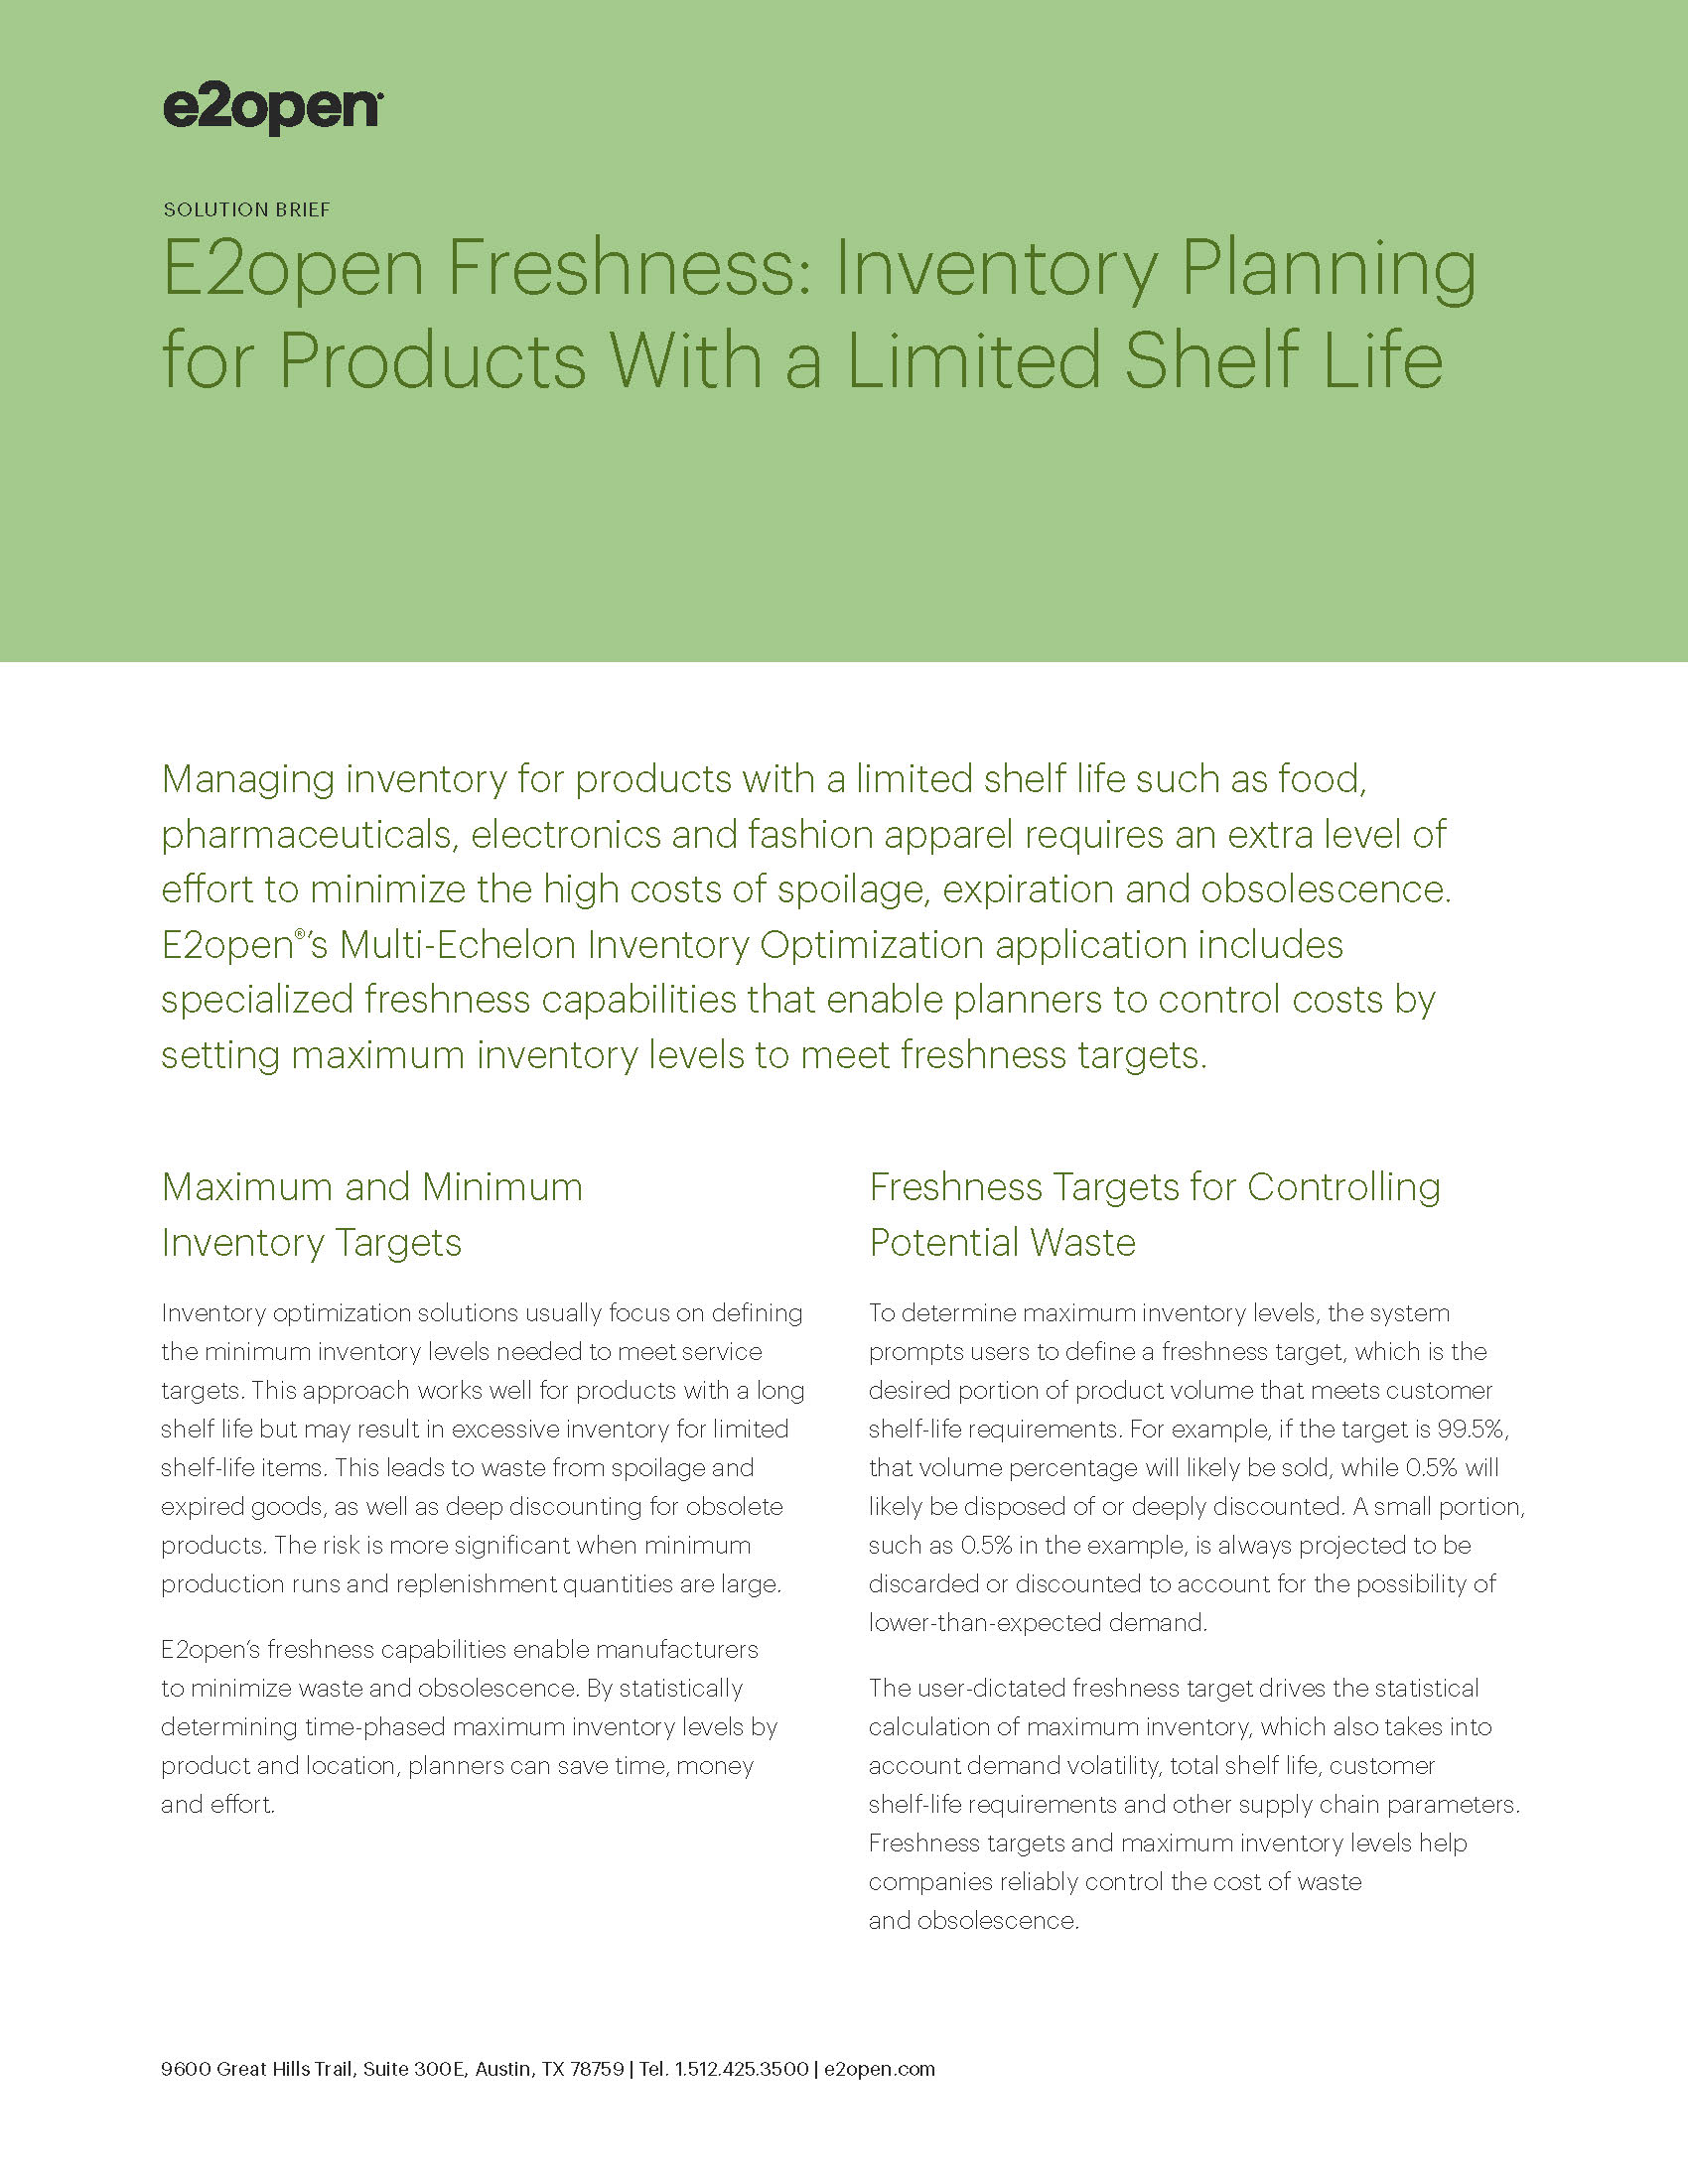 E2open Freshness: Inventory Planning for Products With a Limited Shelf Life